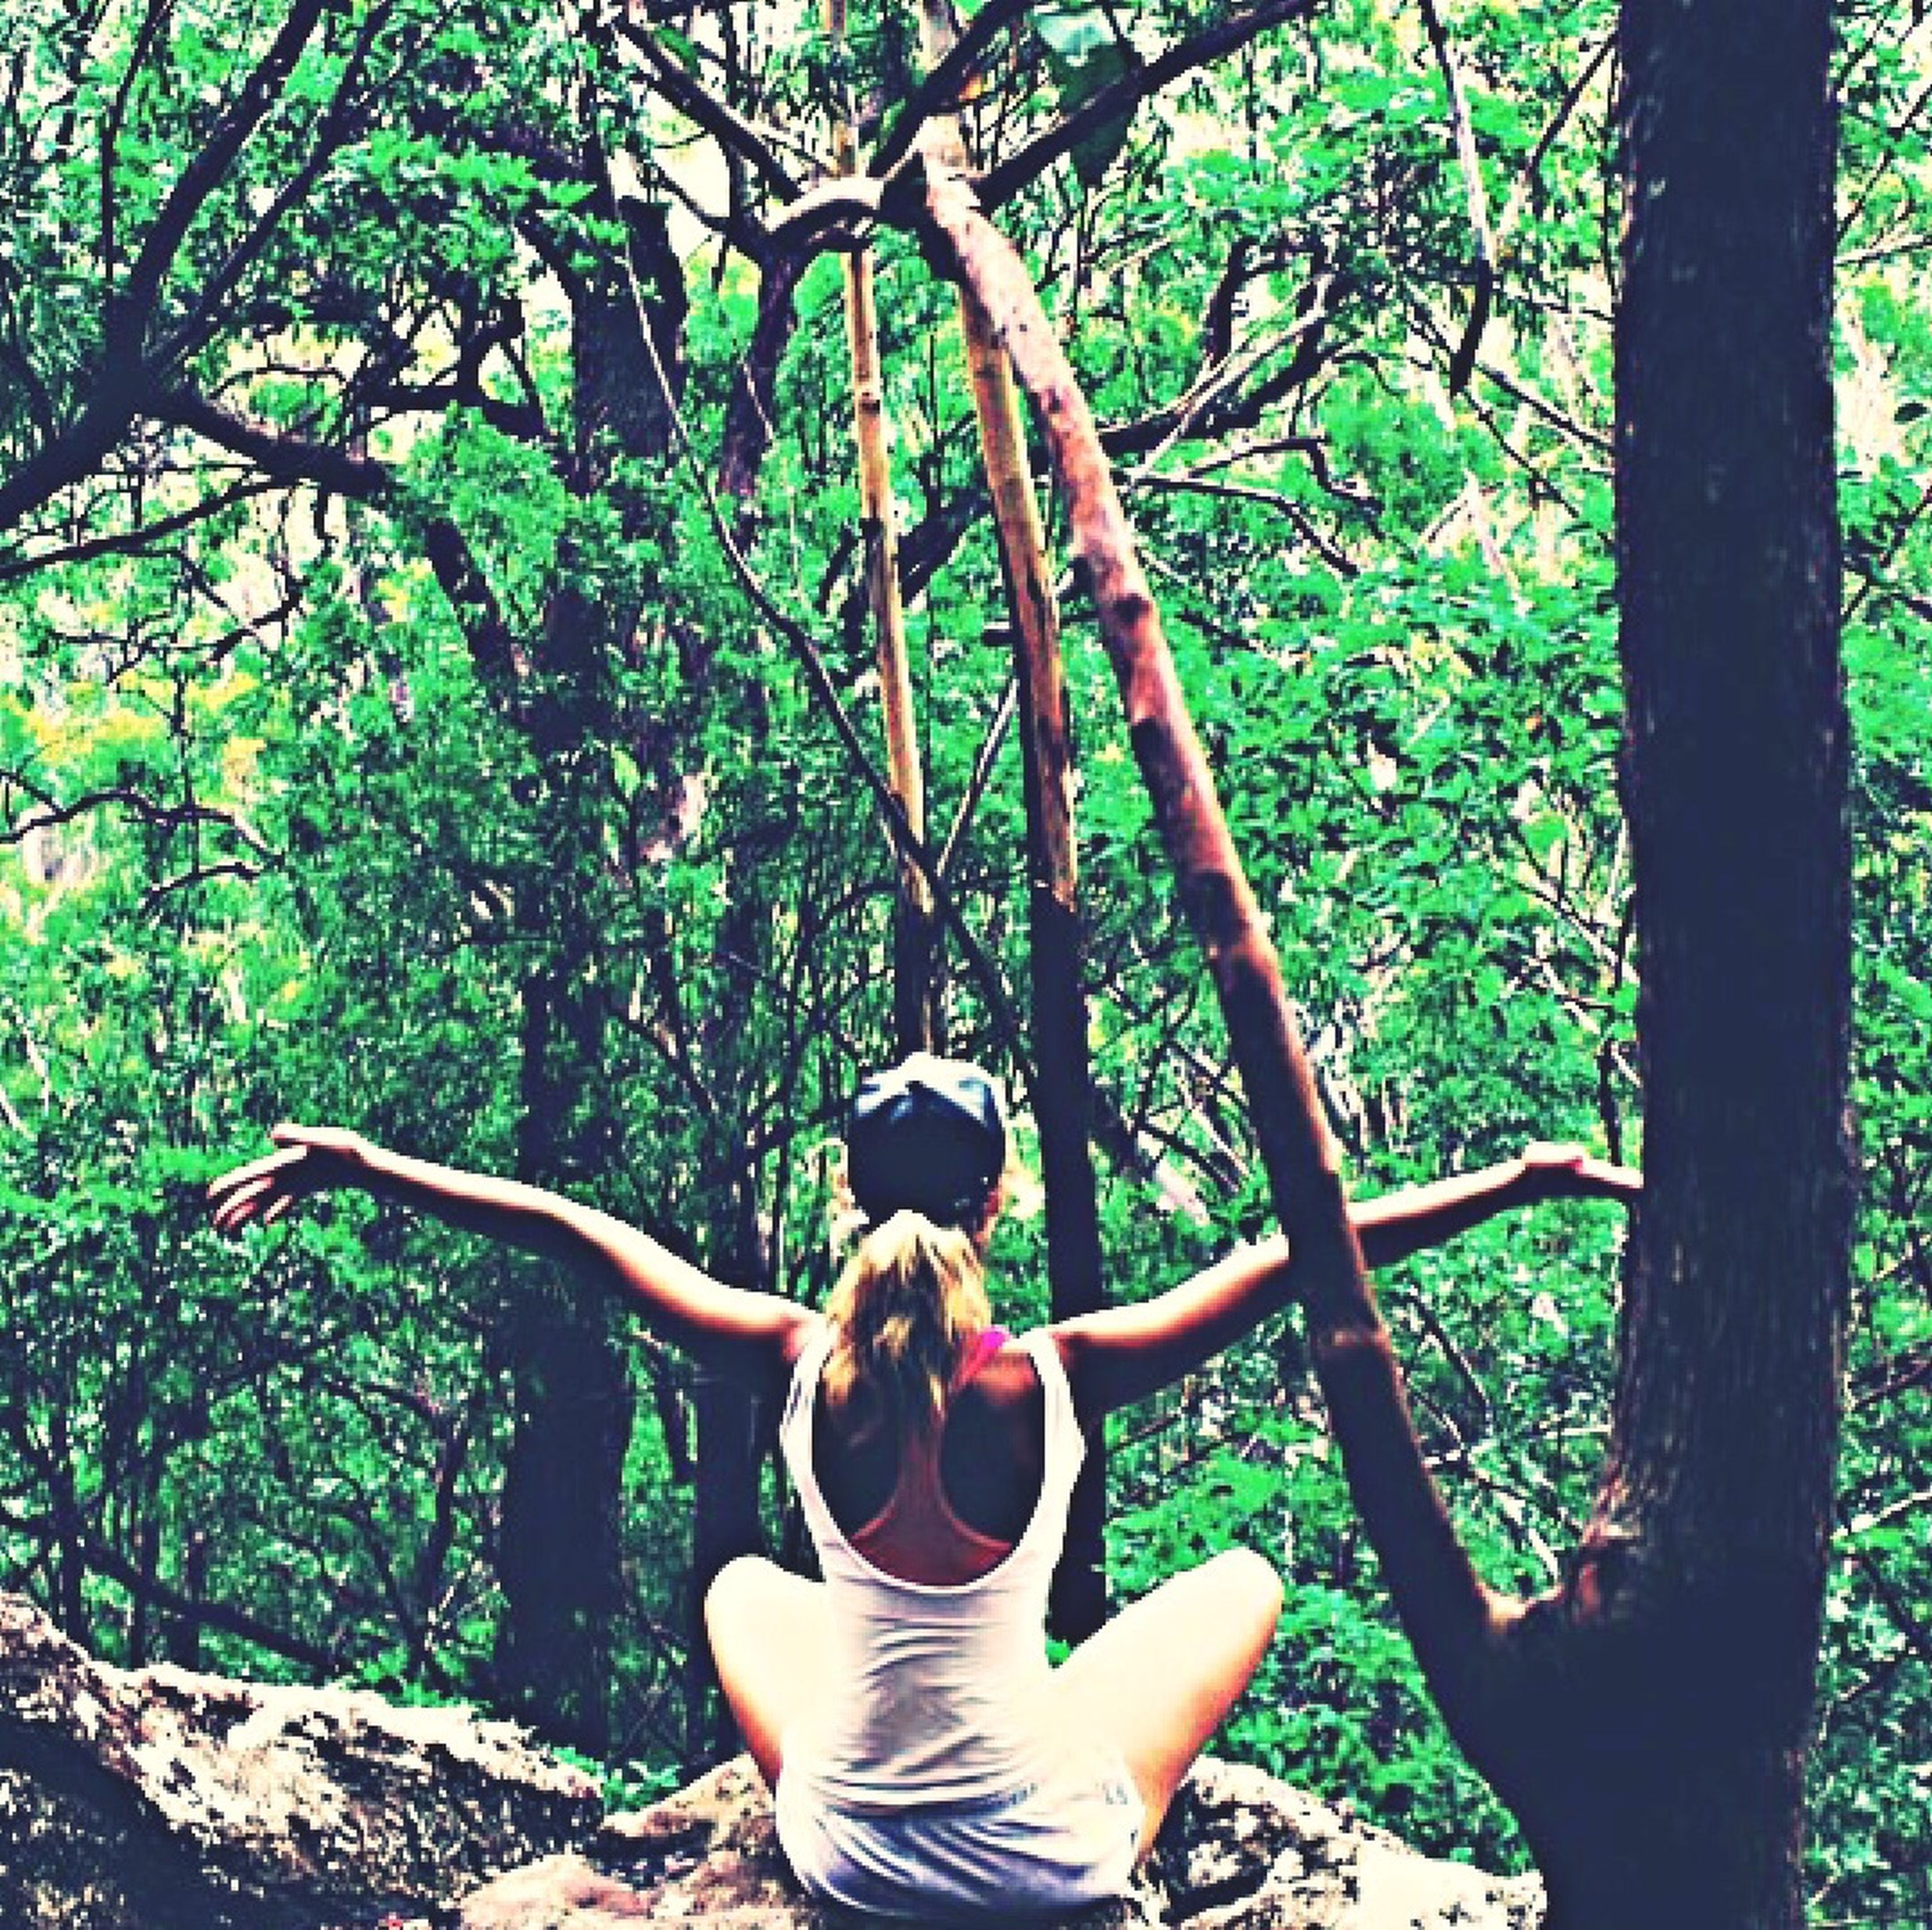 tree, lifestyles, leisure activity, young adult, person, casual clothing, full length, sitting, young women, forest, childhood, tree trunk, branch, relaxation, three quarter length, growth, nature, park - man made space